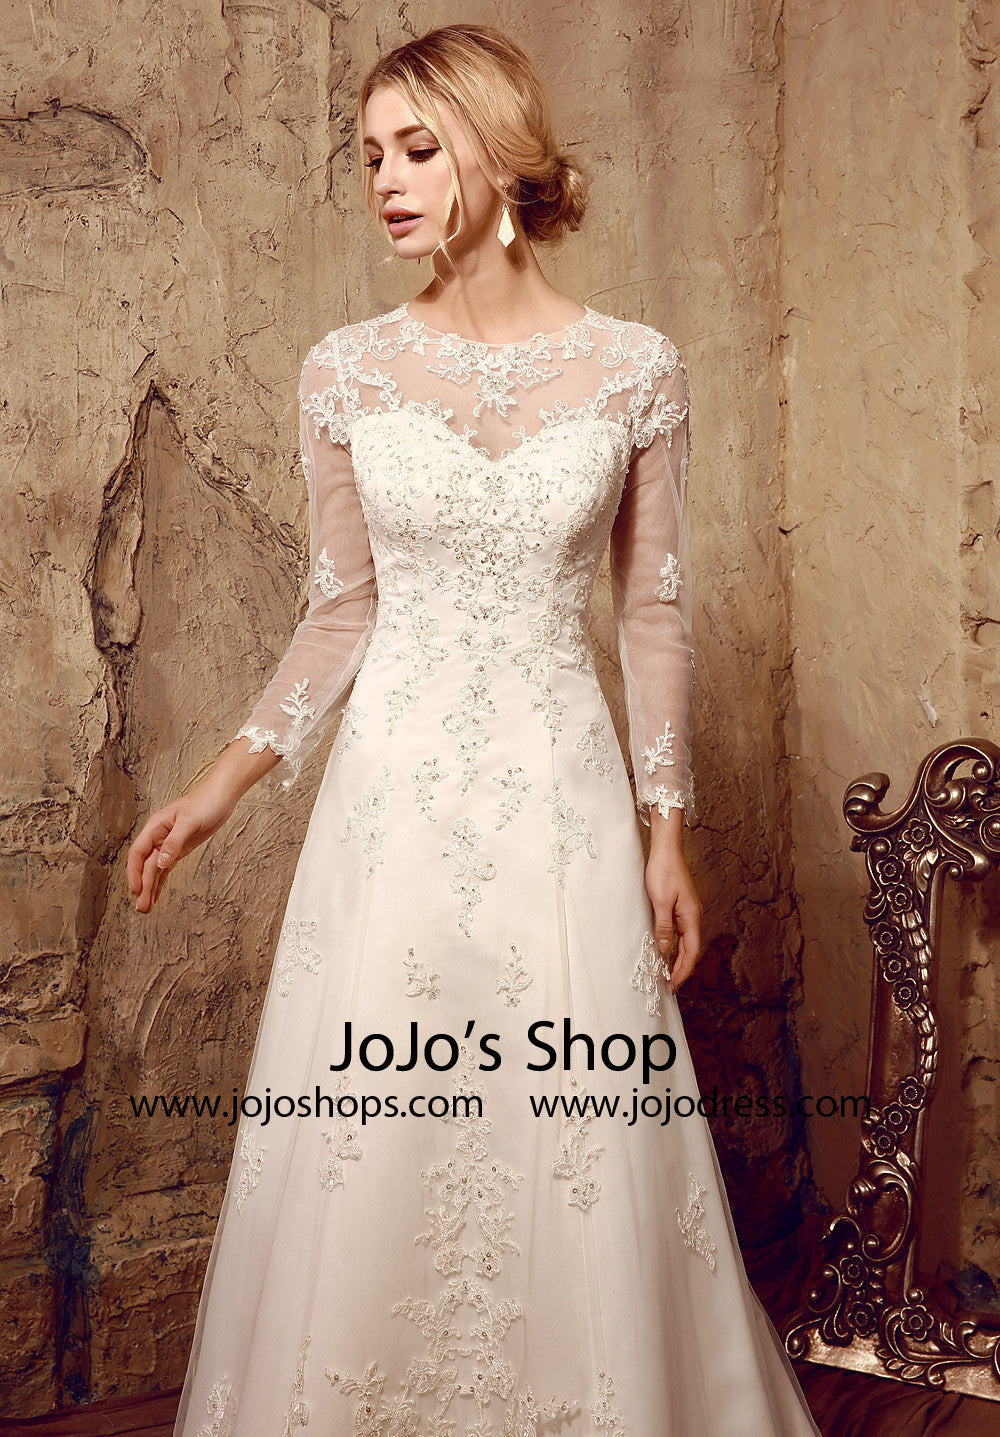 504b6be8226 Vintage Style Lace Wedding Dresses With Sleeves - Gomes Weine AG